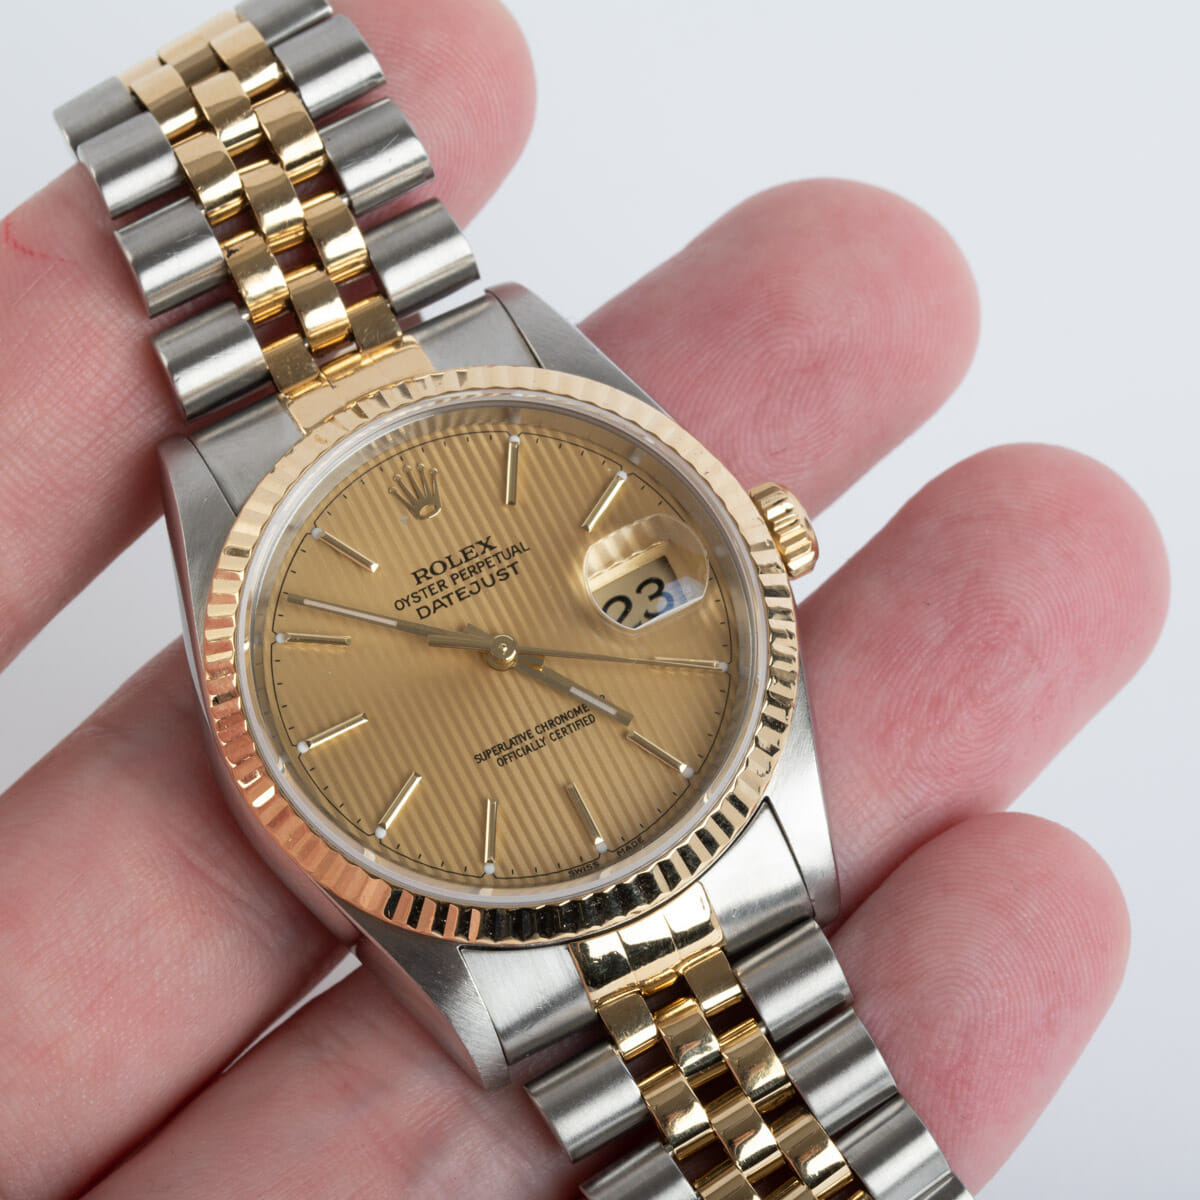 Extra Shot of Datejust 36